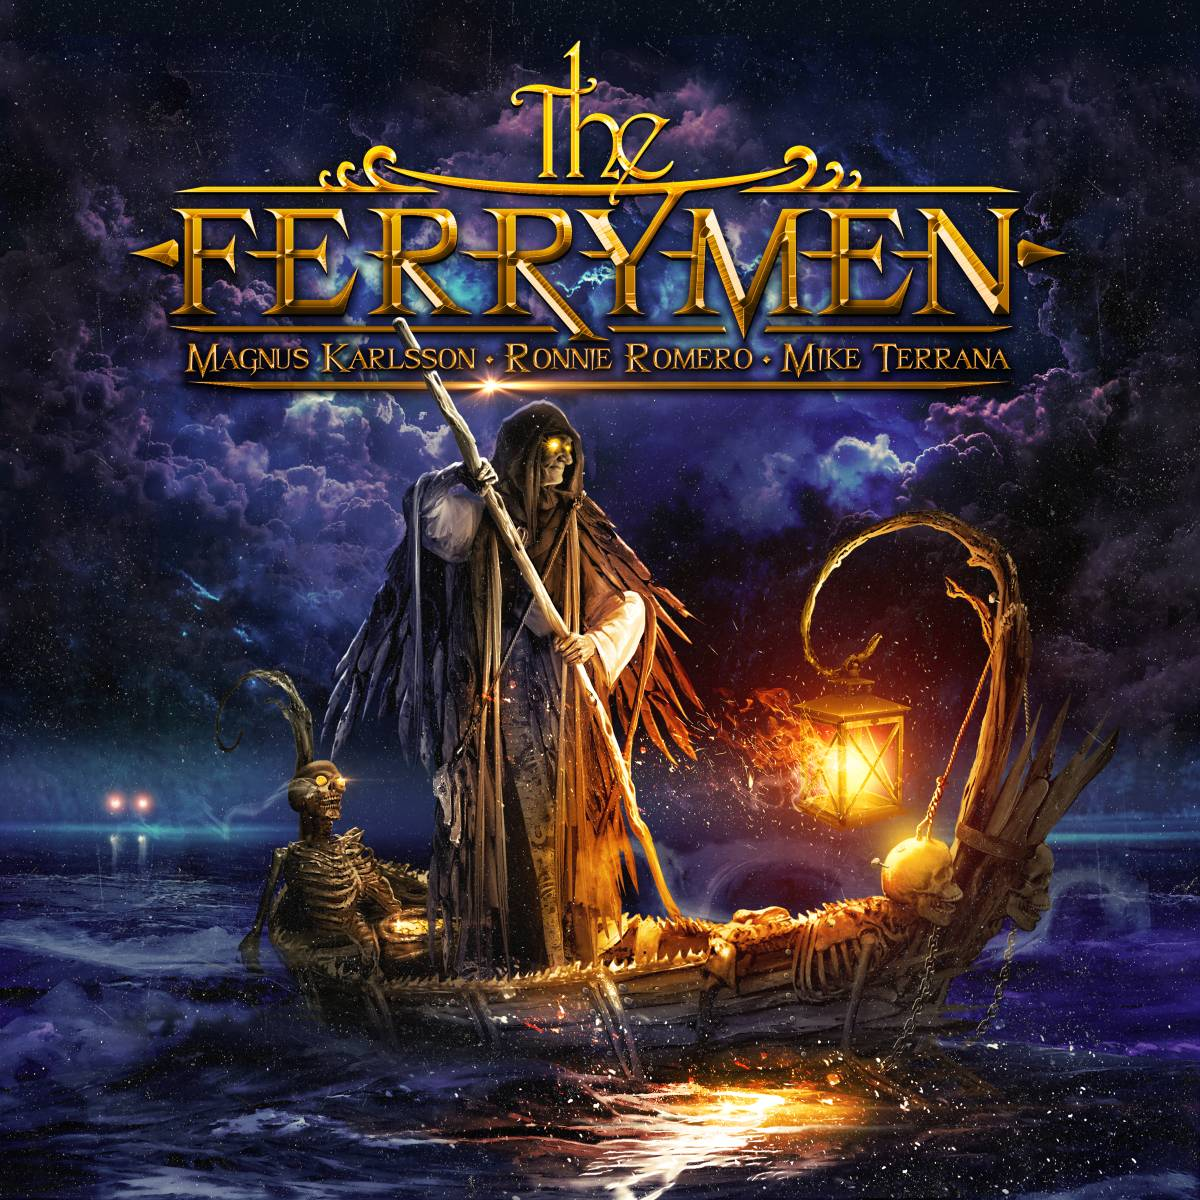 THE_FERRYMEN_cover_3000